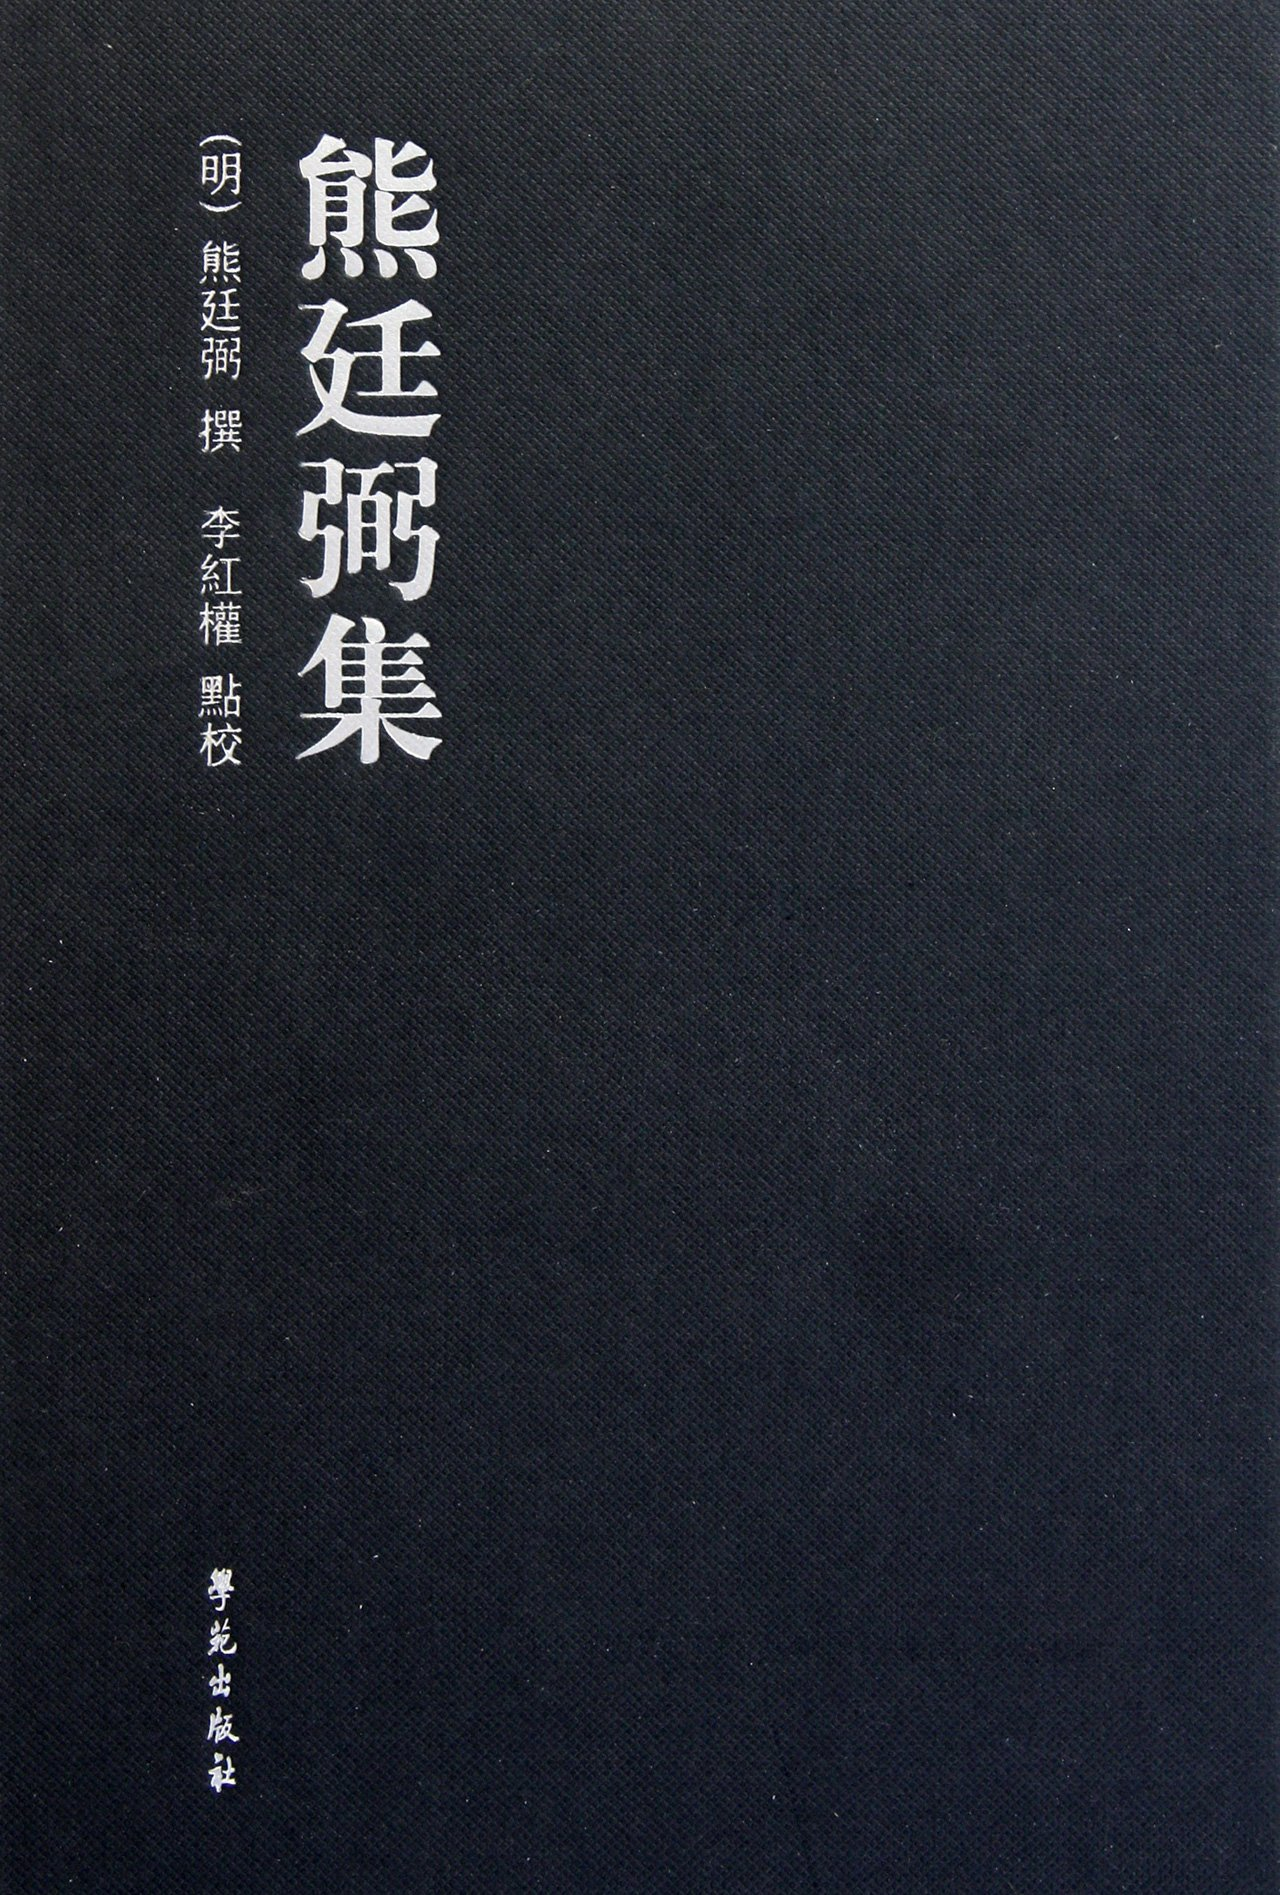 Read Online Xiong Tingbi works ( Hardcover ) (Chinese Edition) ebook